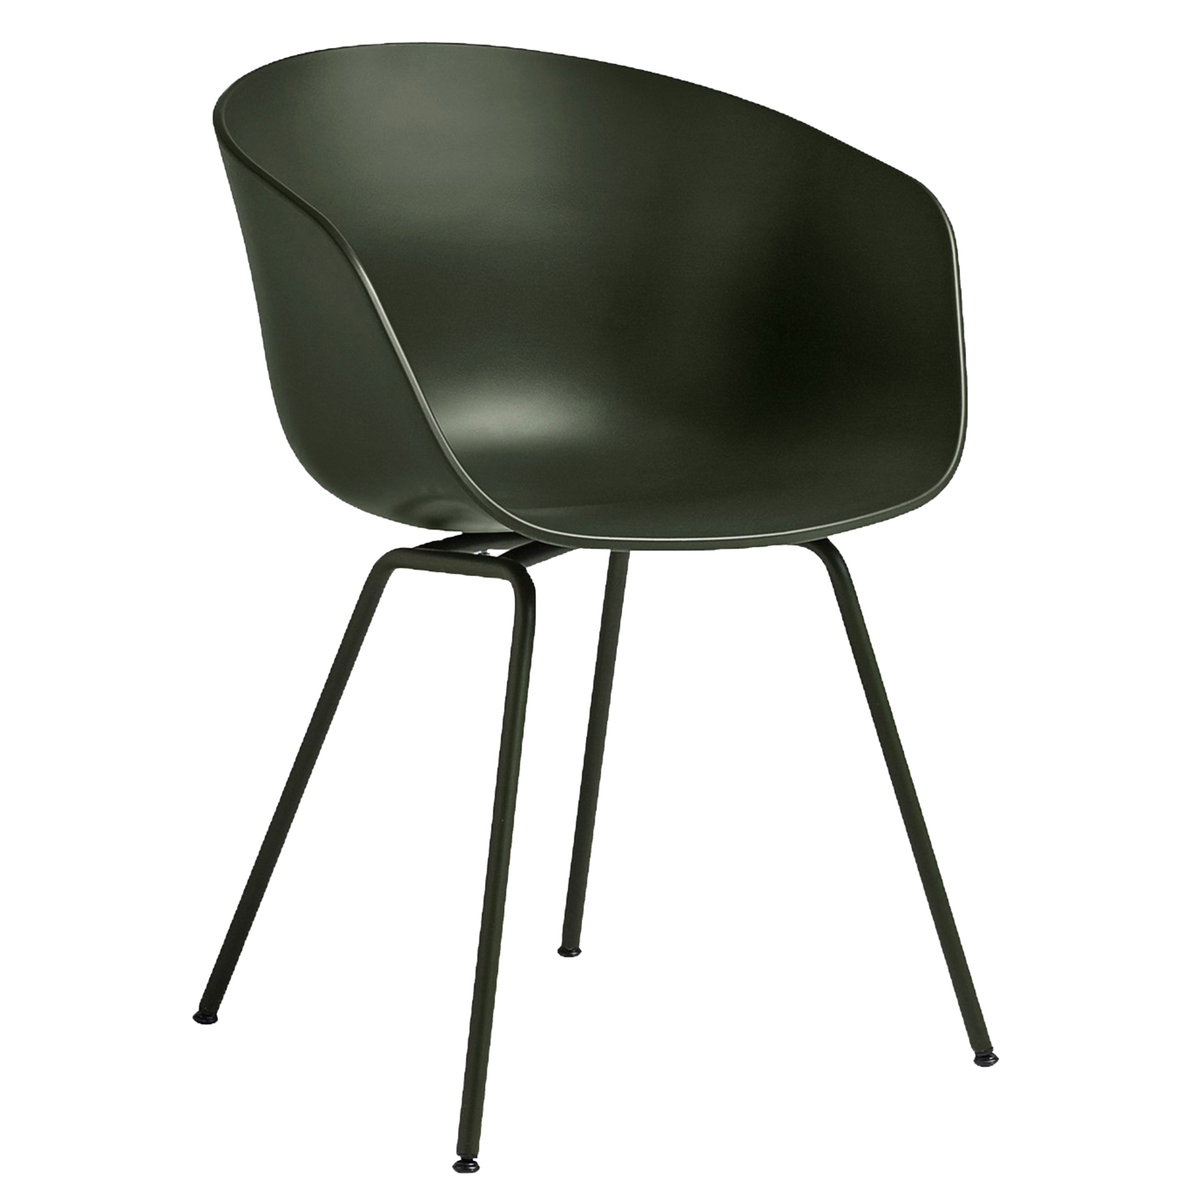 hay about a chair aac26 vihre finnish design shop. Black Bedroom Furniture Sets. Home Design Ideas